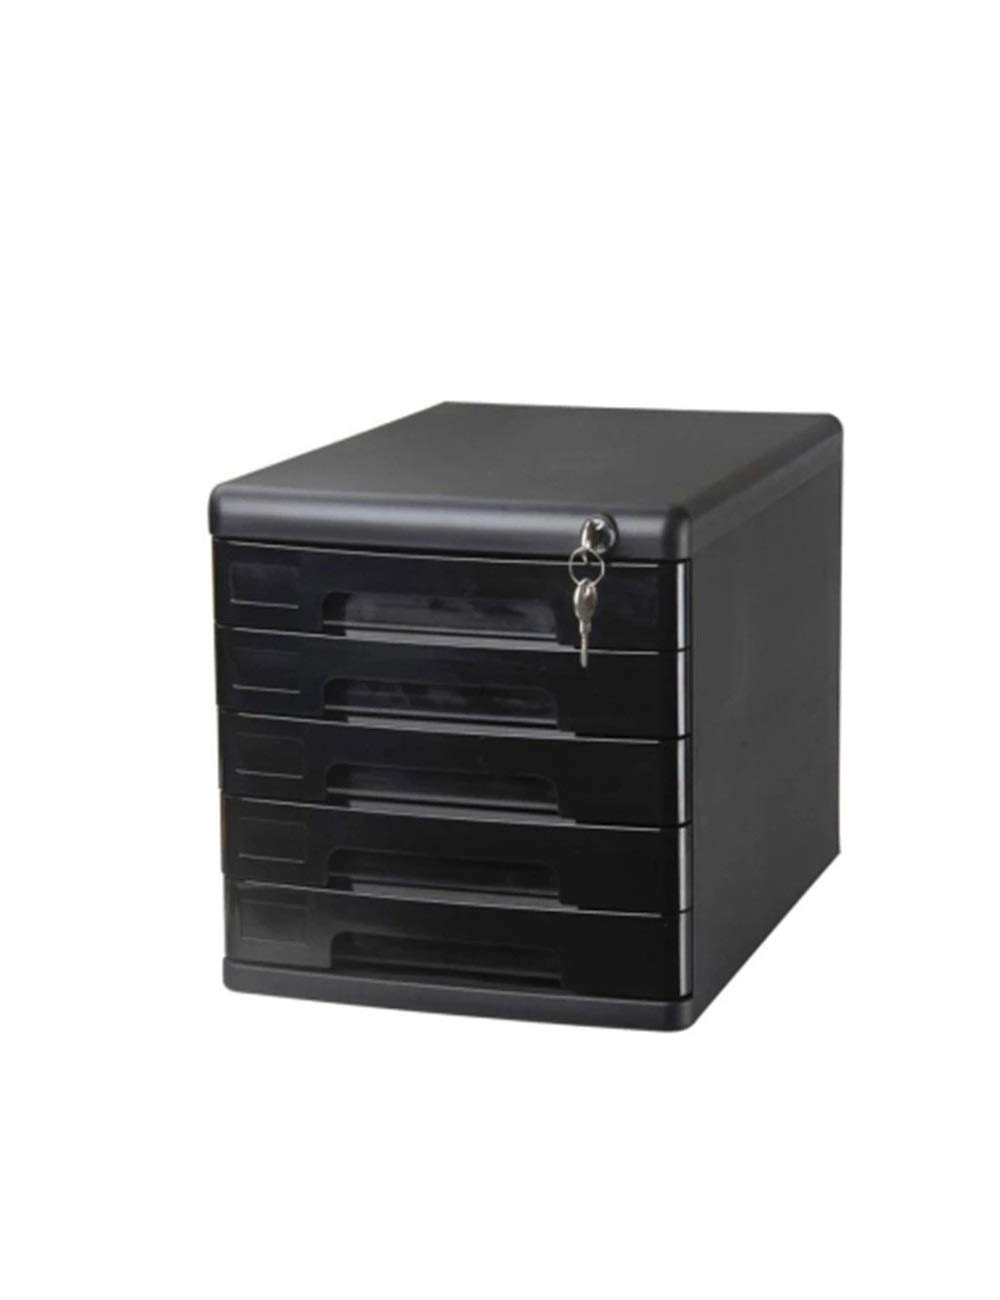 File Cabinet Office Desktop Cabinet 5 Drawers 36.127.126(cm) Plastic Safety Cabinet File Storage Cabinet Storage Box with Lock Filing cabinets (Color : B)